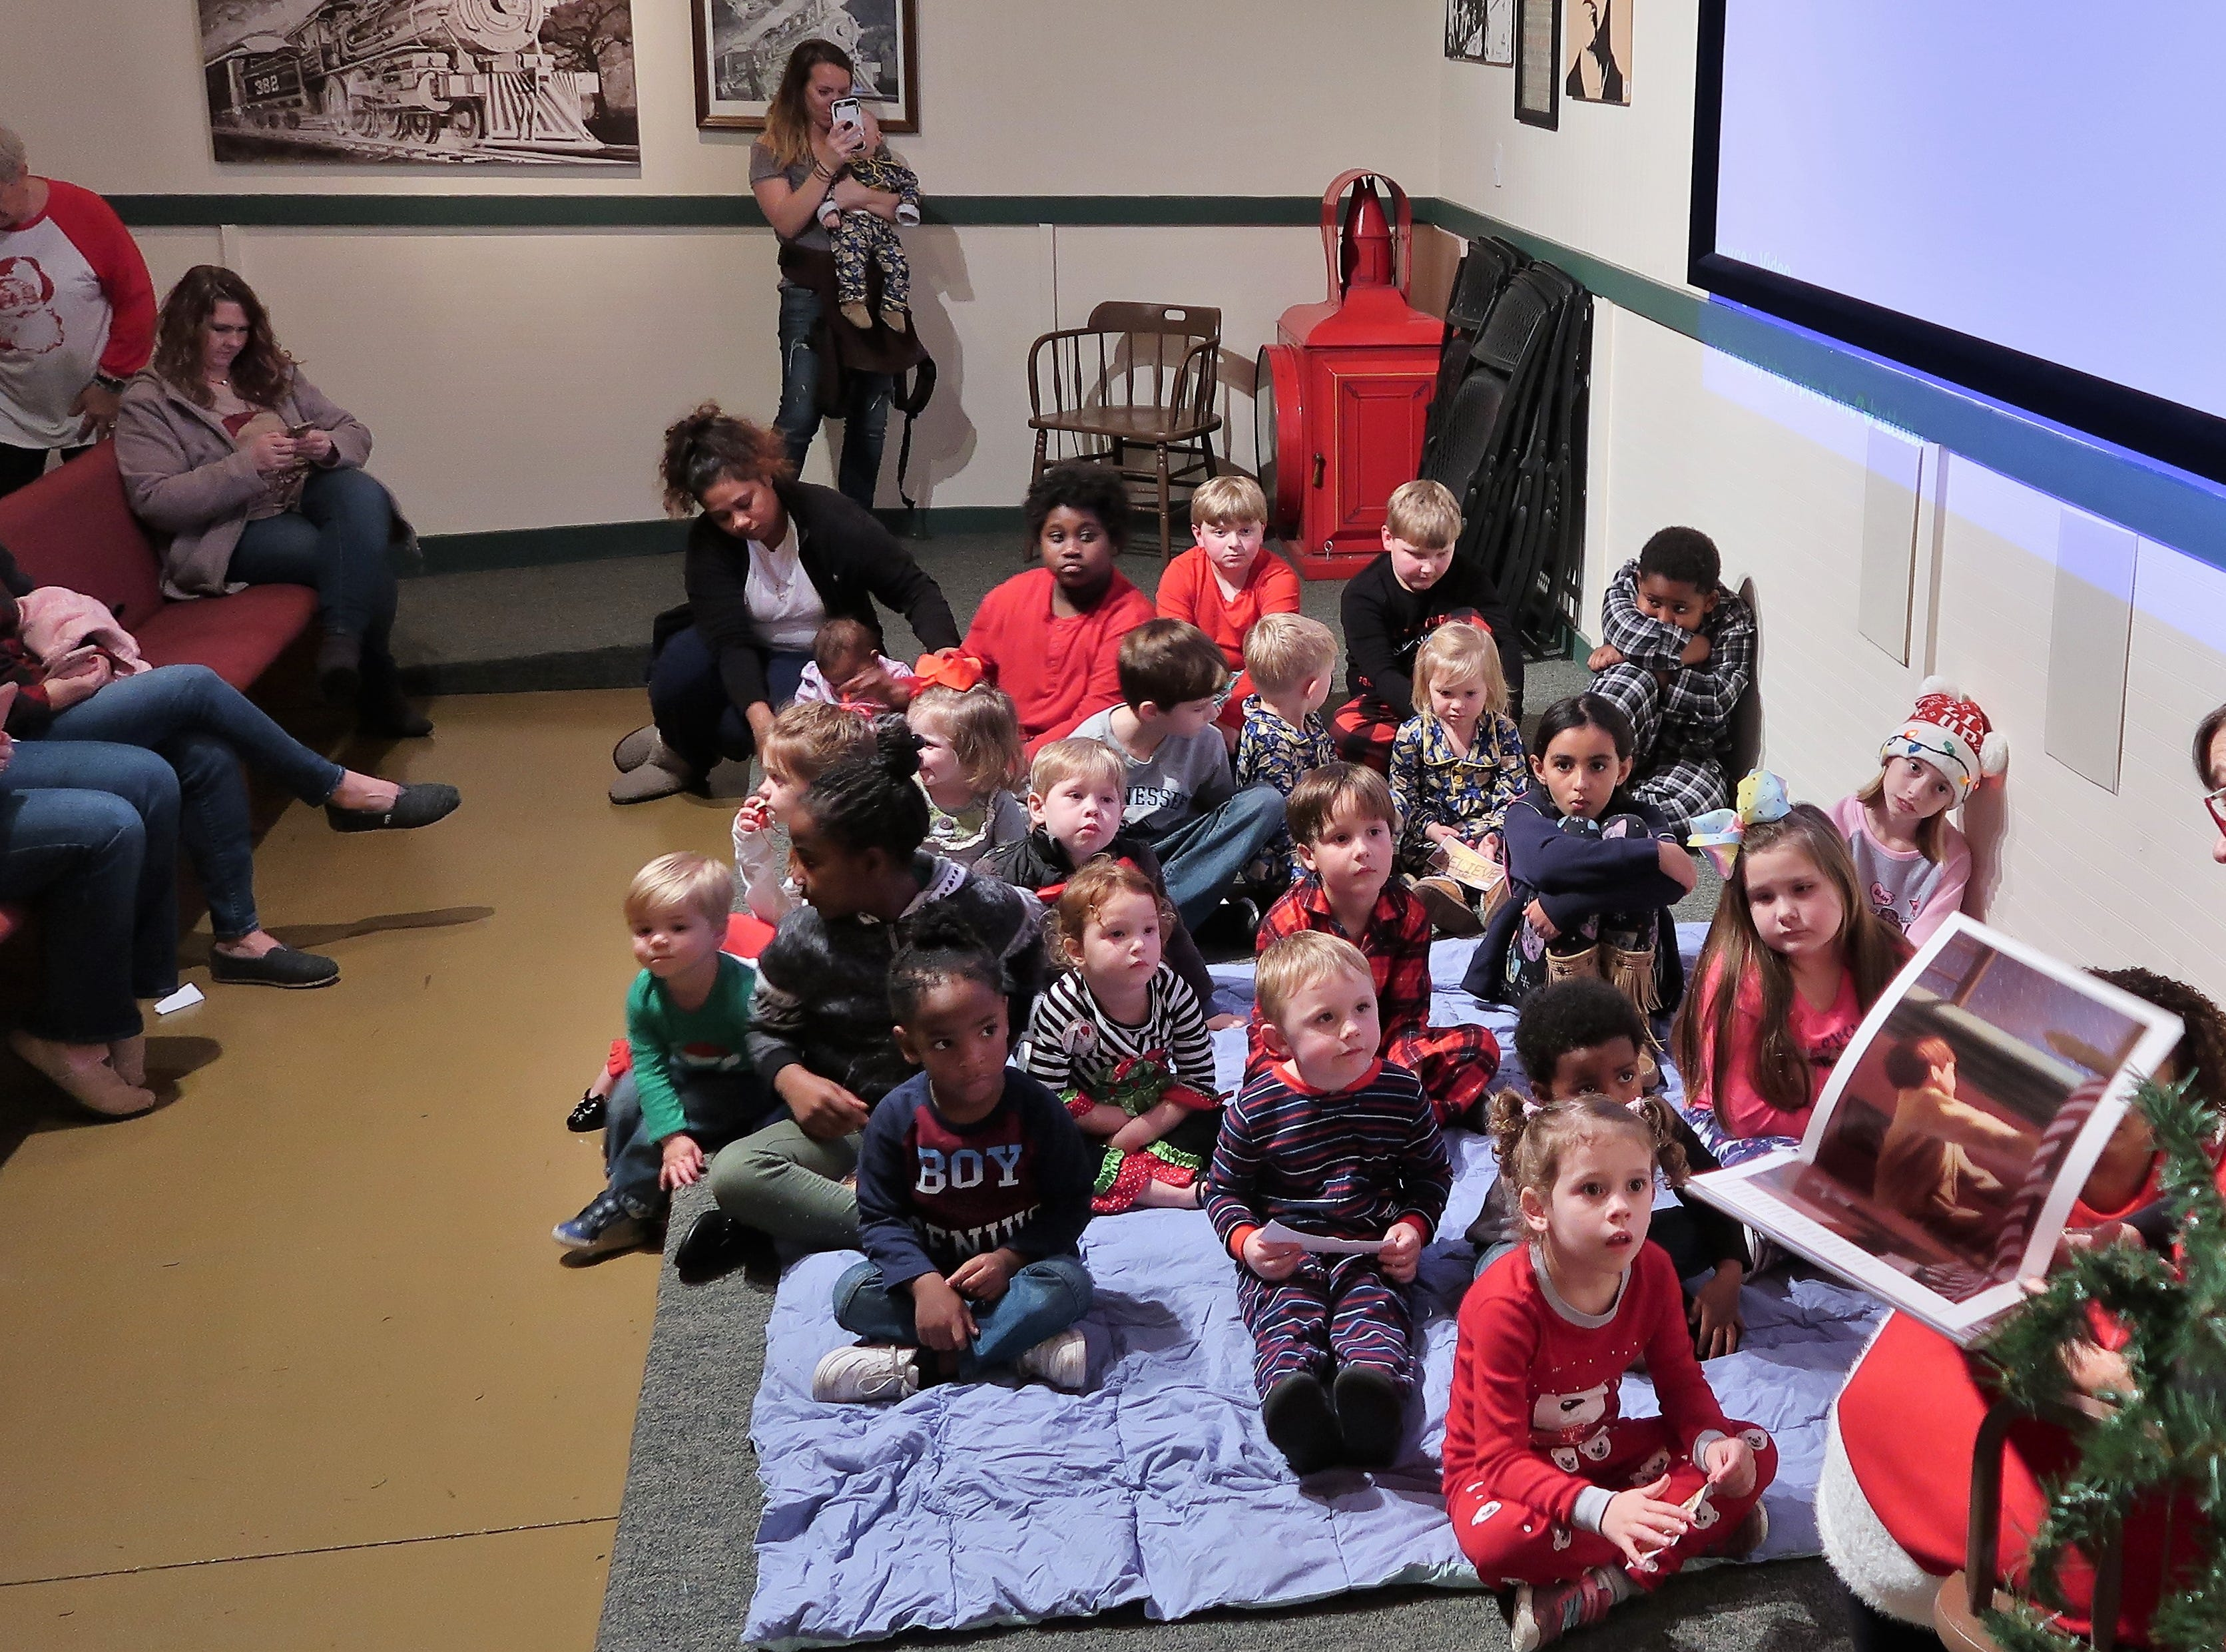 The Casey Jones Village hosted the Polar Express on Saturday, December 1, 2018 for children ages 4-10 in the Casey Jones Home and Railroad Museum.  The story of Polar Express was read to the children before they completed craft activities, toured the engine of a real train, and enjoyed cookies and hot chocolate.  Each child had the opportunity to visit and take photos with Santa.  For more information on the Polar Express events at Casey Jones Village during December, call 731-668-1222.